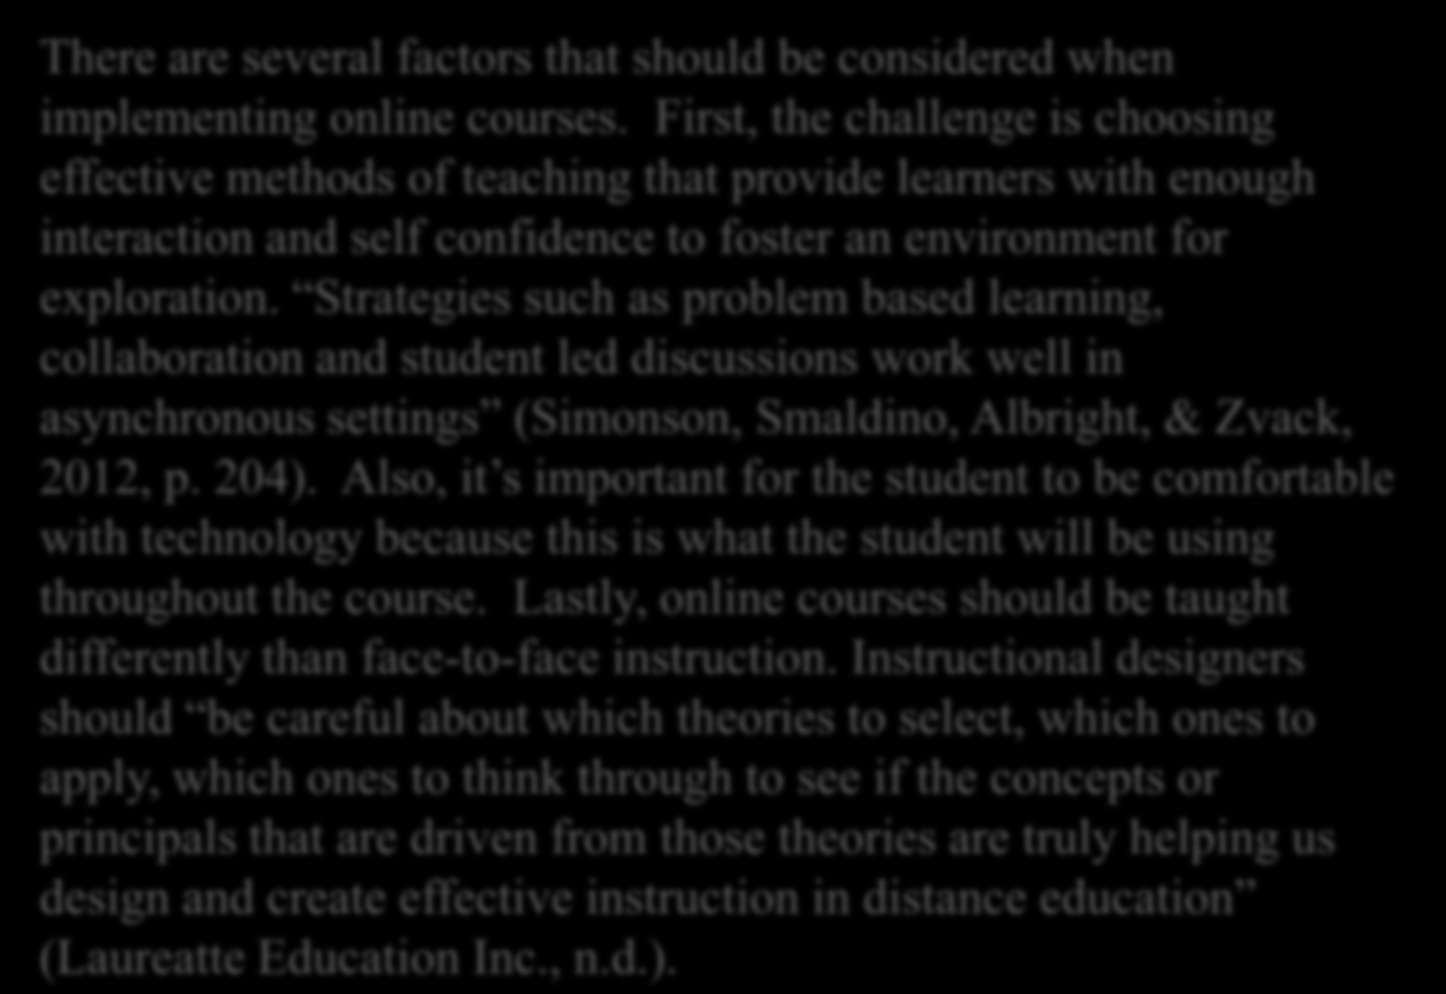 Online Courses there between the learner and the facilitator? Identify 2-3 cons for each What factors need to be implementing each model?